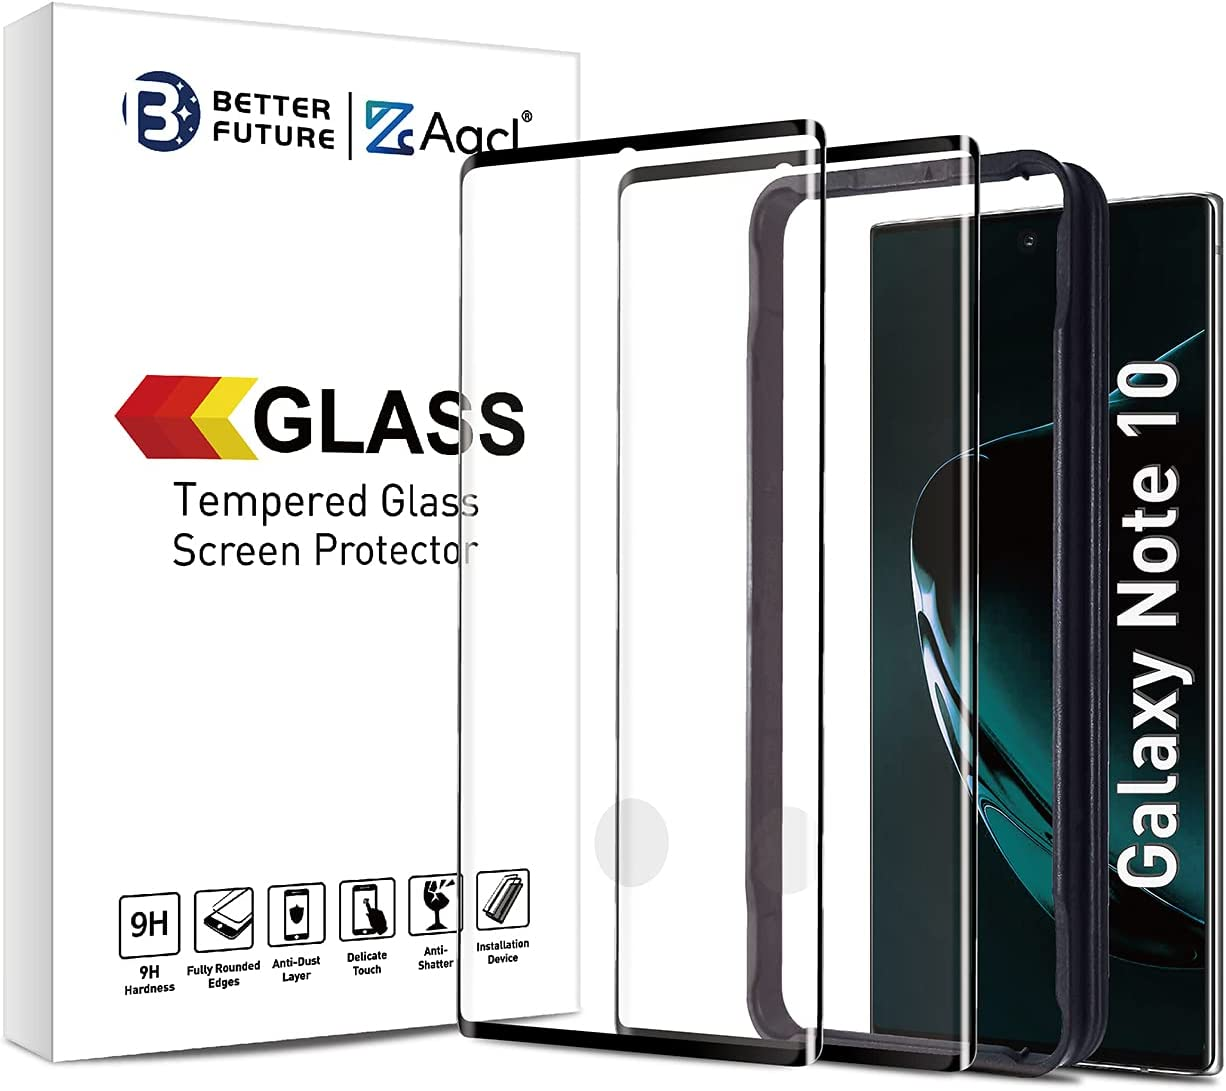 Screen Protector for Samsung Galaxy Note 10,6.3 Inch,Curved Tempered Glass,Compatible with Ultrasonic Fingerprint Scanner,2 Pack,Black